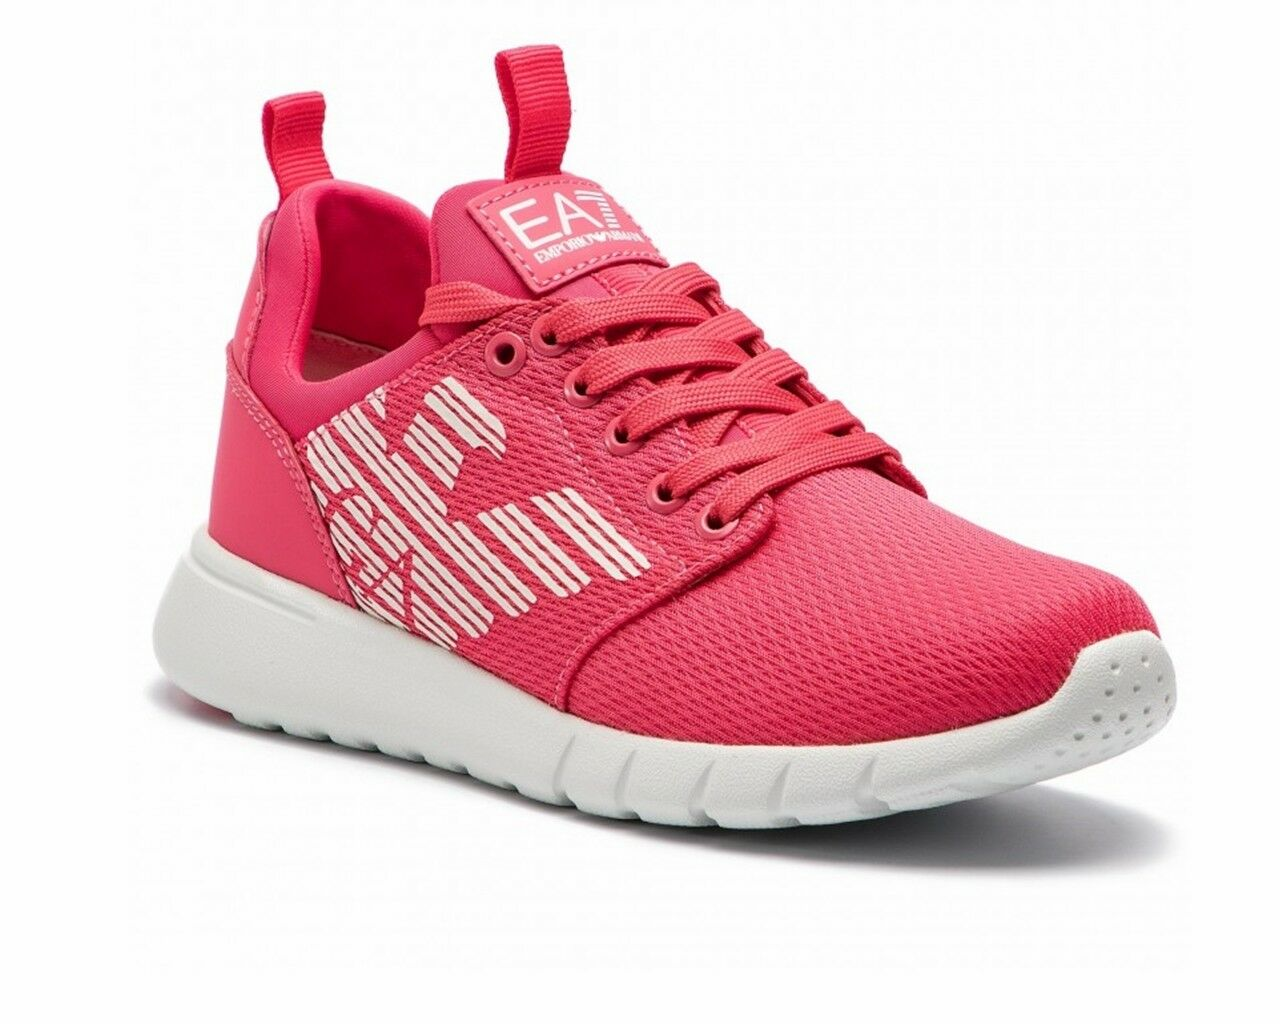 Emporio Armani X8X007 XCC02 EA7 Mesh Women's Trainers red Red Red Red Gym shoes 150d6e